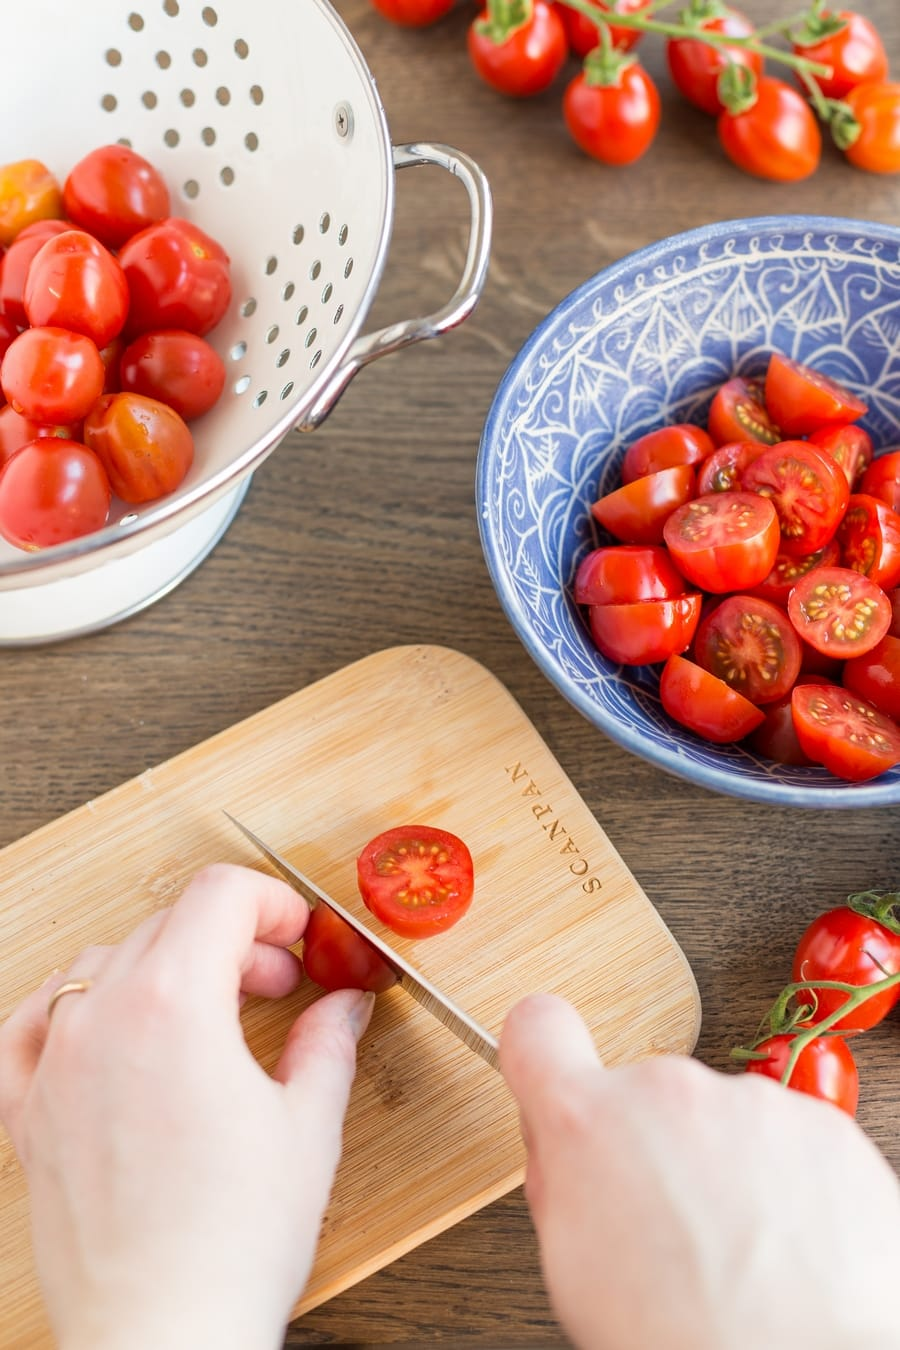 Cutting cherry tomatoes in half on a wooden board, placing cut tomatoes in a bowl.